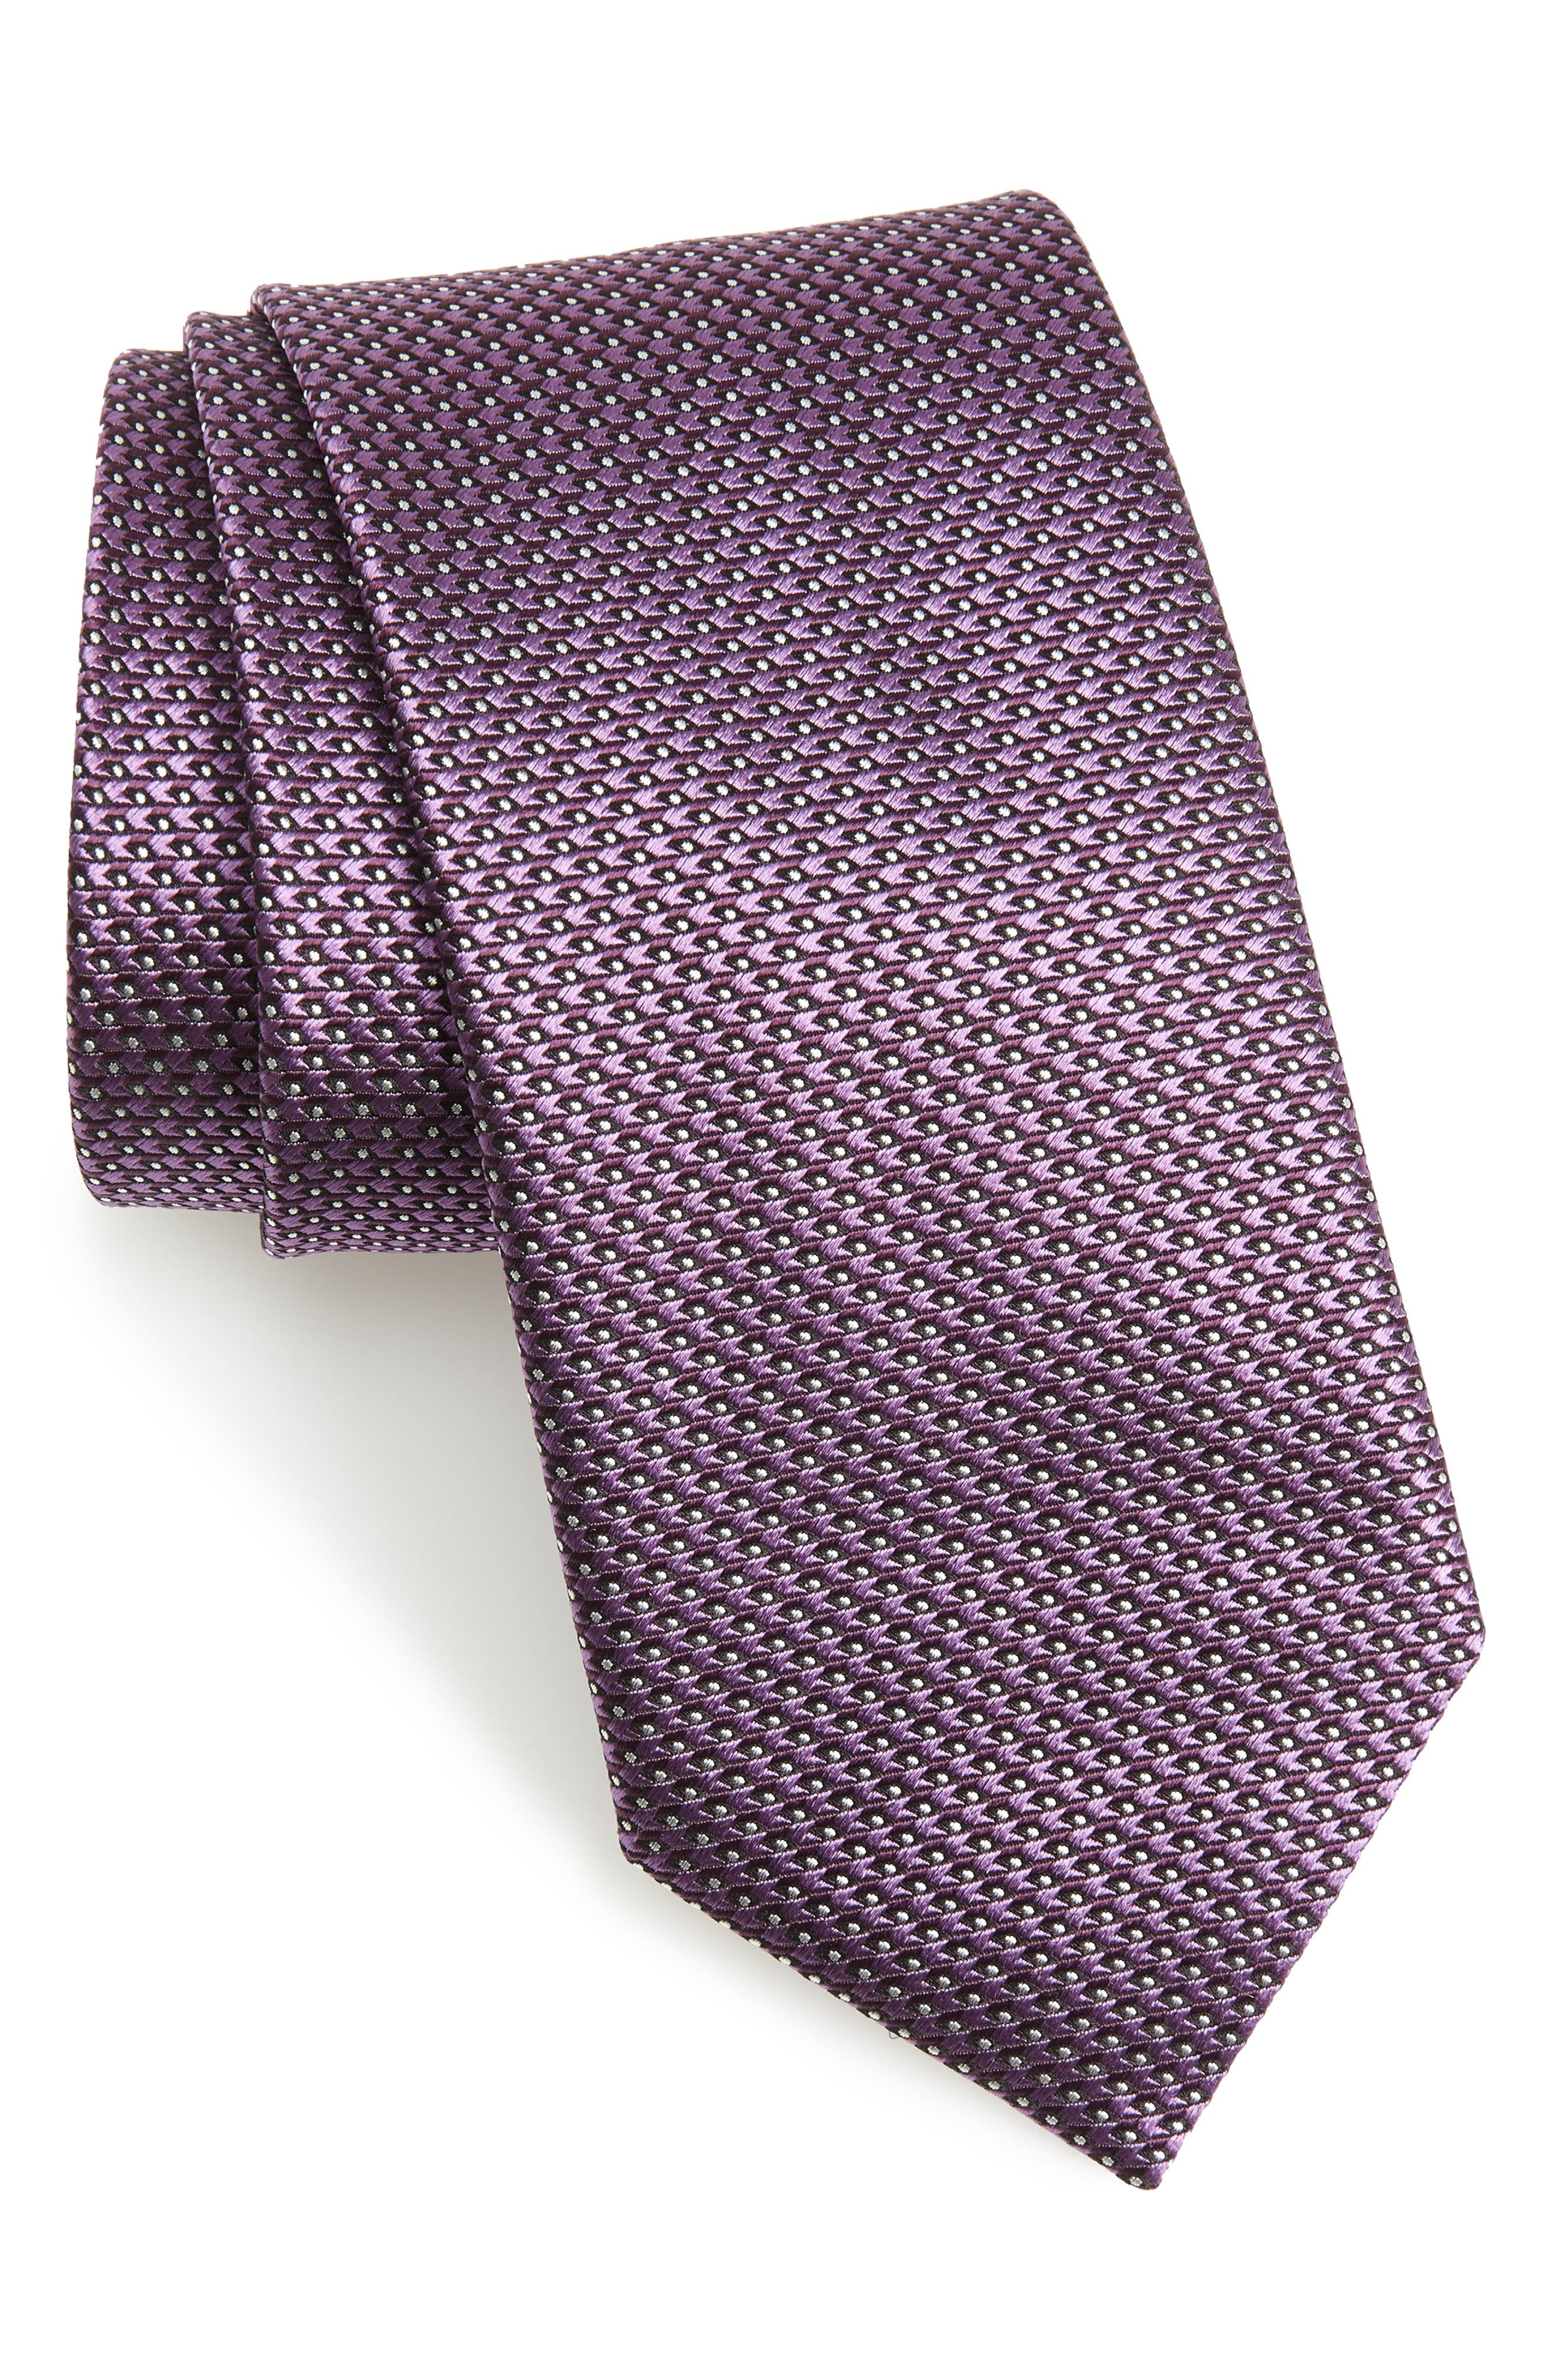 Solid Silk Tie,                             Main thumbnail 1, color,                             Purple